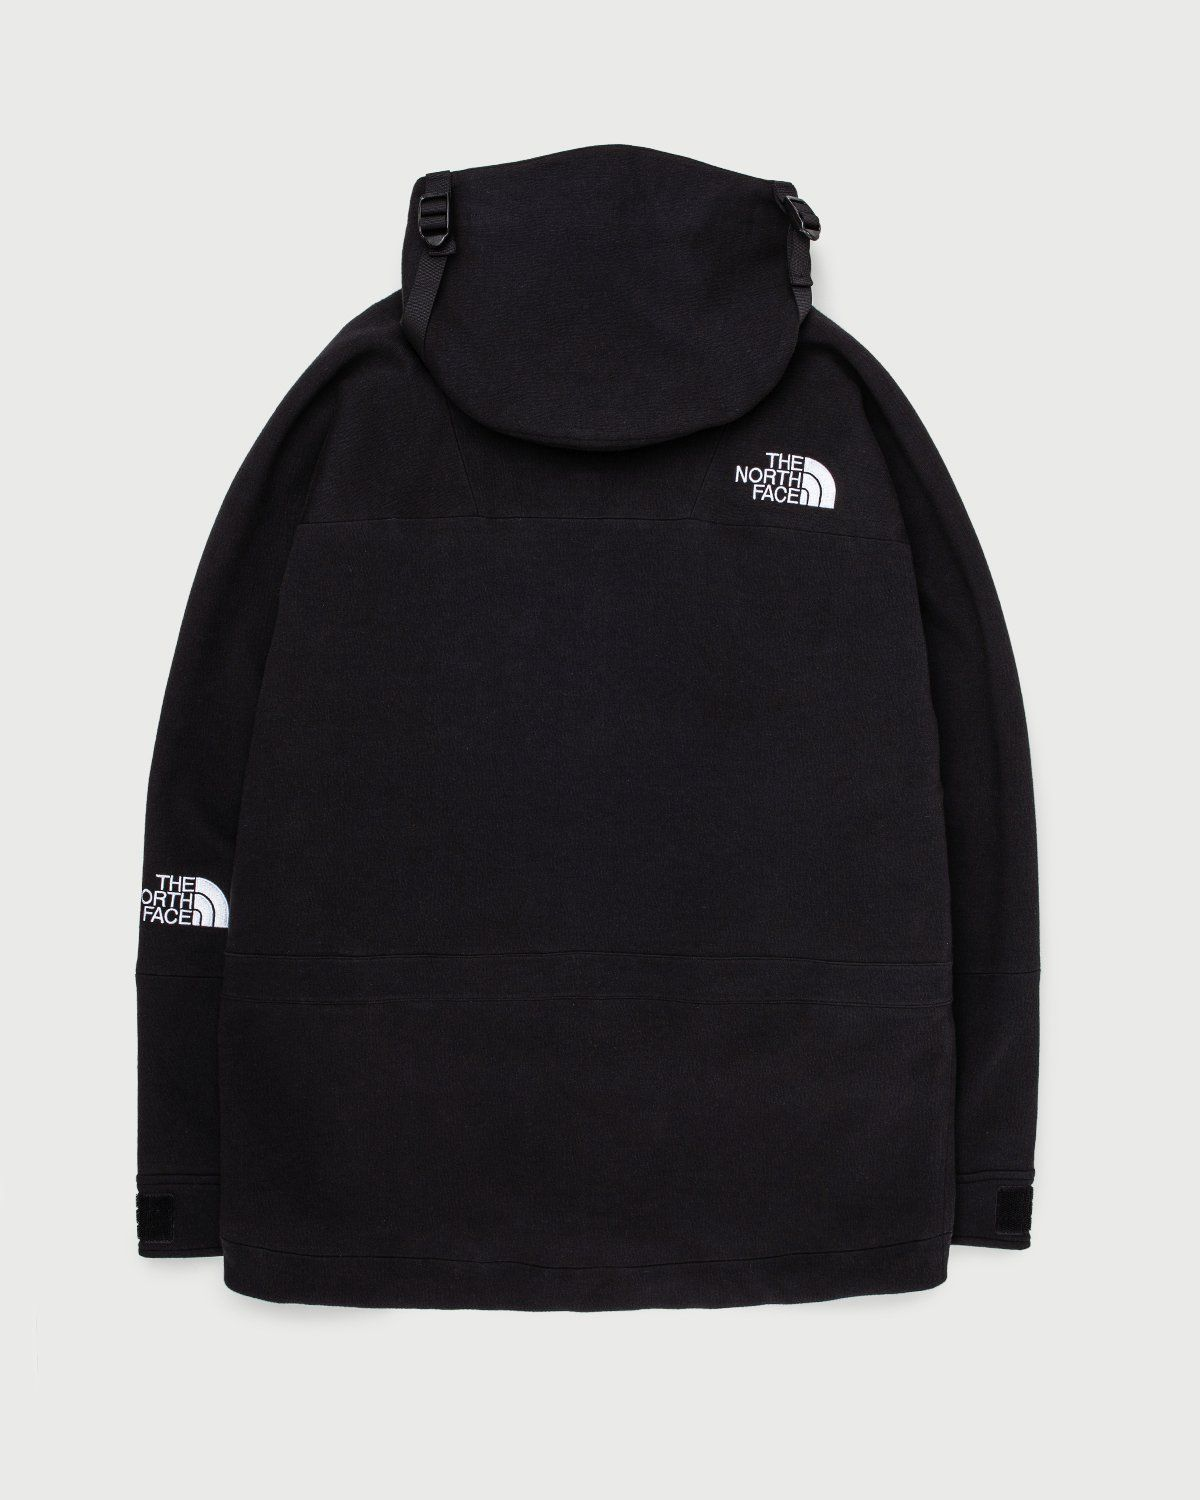 The North Face Black Series - Spacer Knit Mountain Light Jacket Black - Image 3